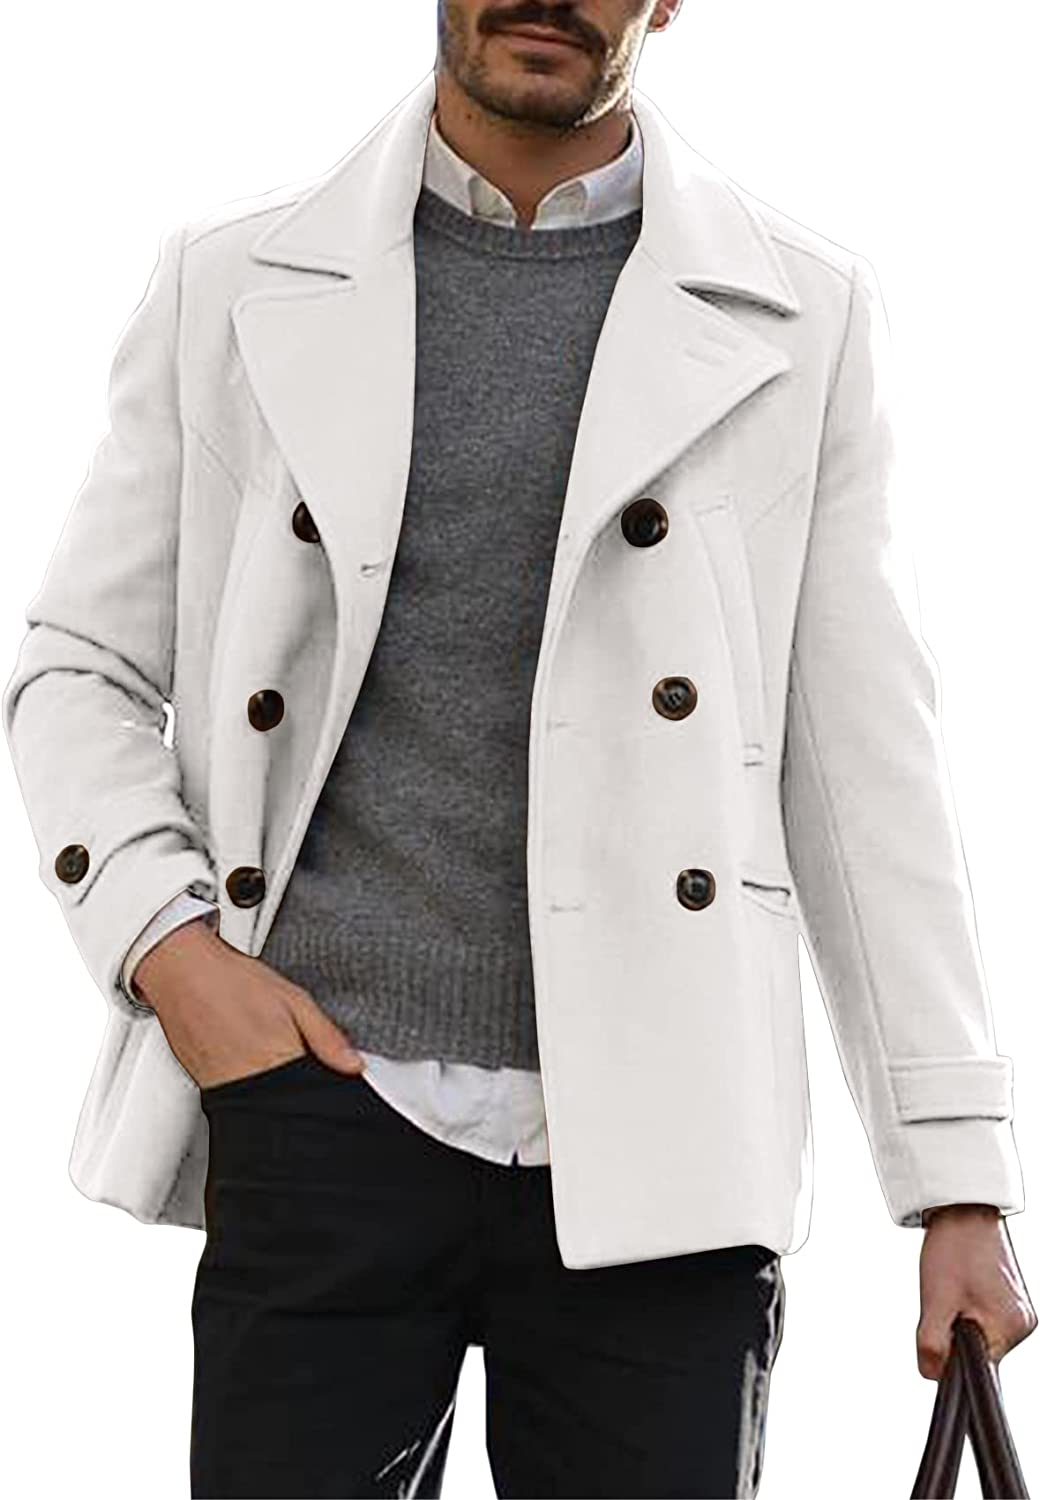 Men's Short Trench Ranking integrated 1st place Coat Double Winter Notched Lapel Sli Breasted Luxury